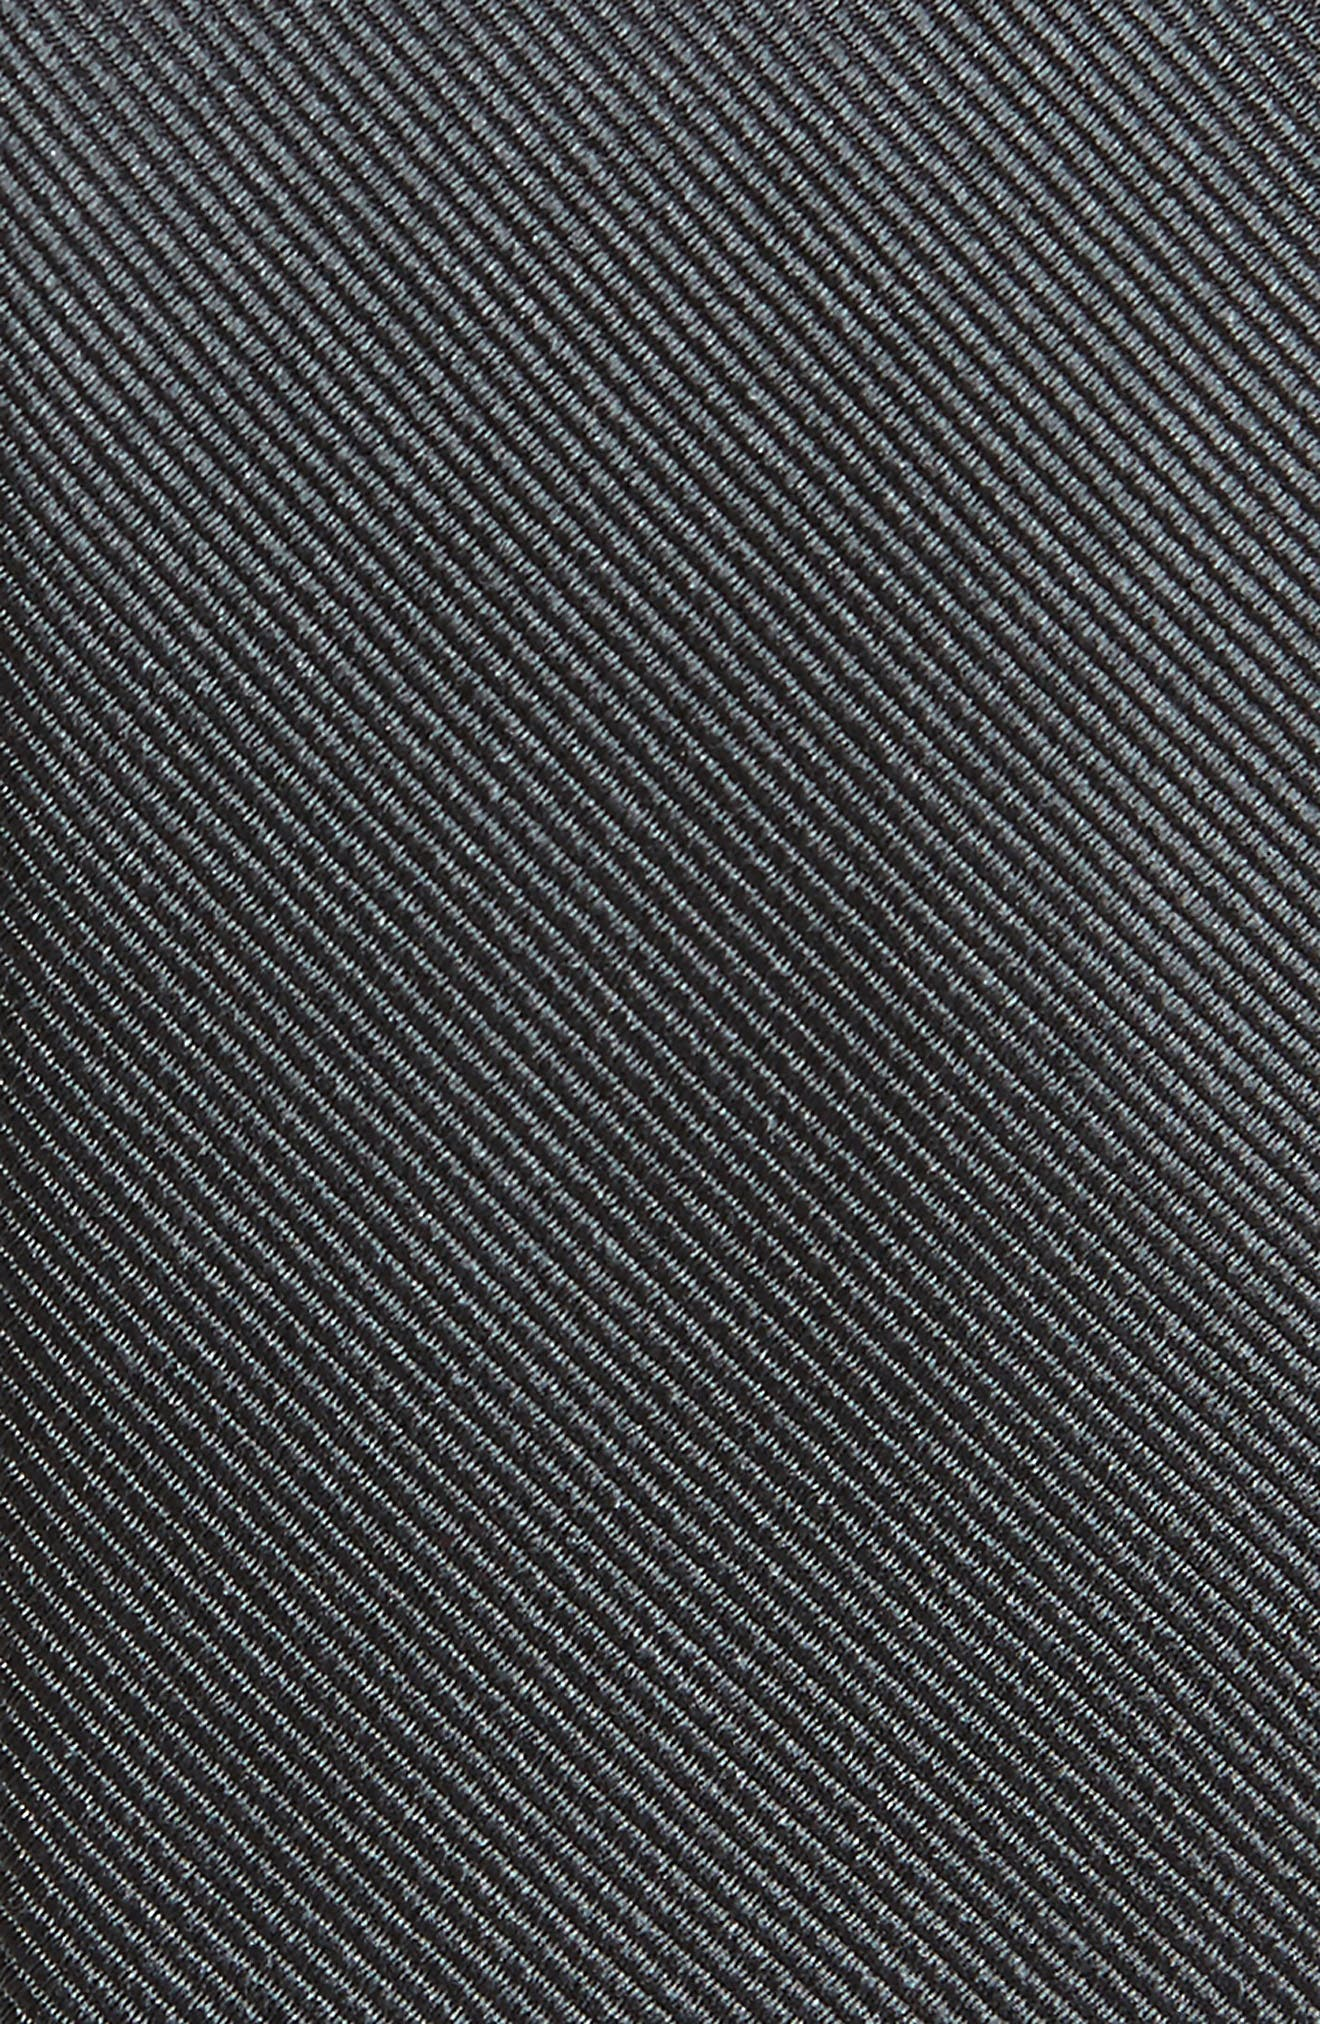 Grosgrain Silk Tie,                             Alternate thumbnail 2, color,                             020